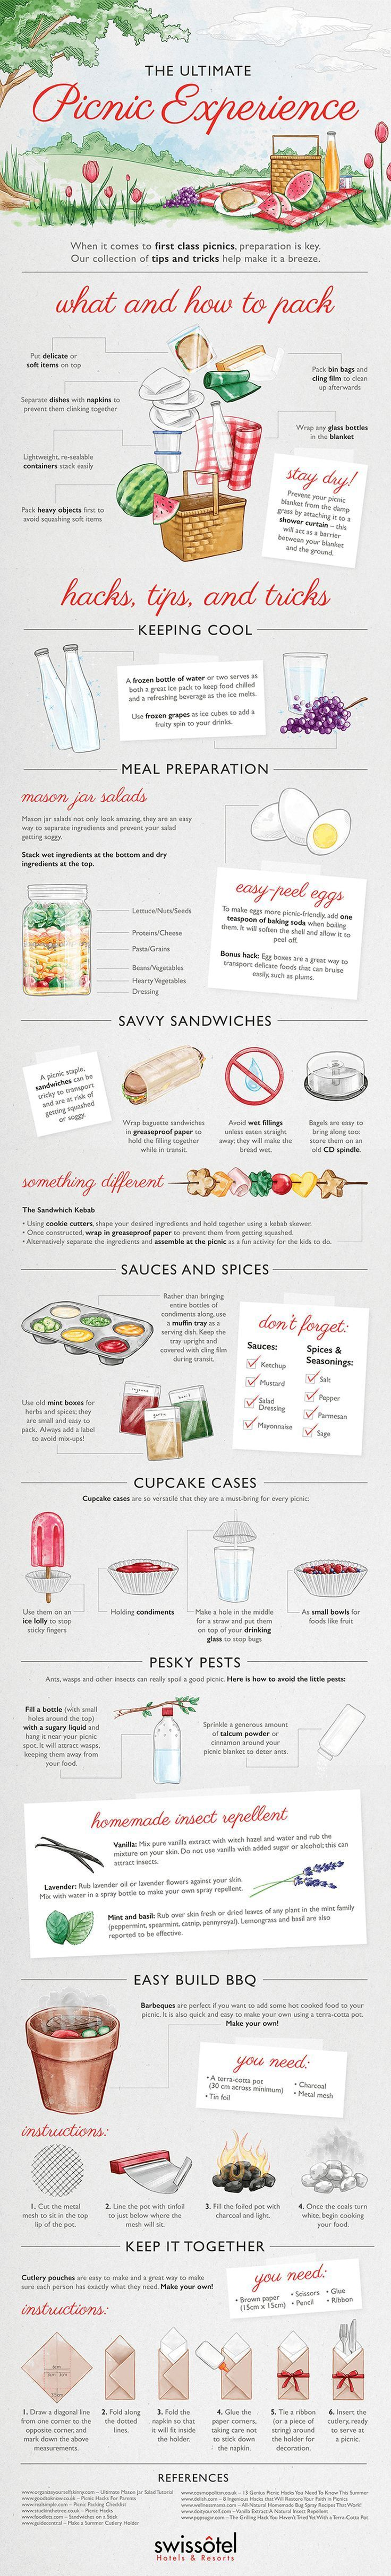 Top tips and food hacks for creating the ultimate summer picnic.